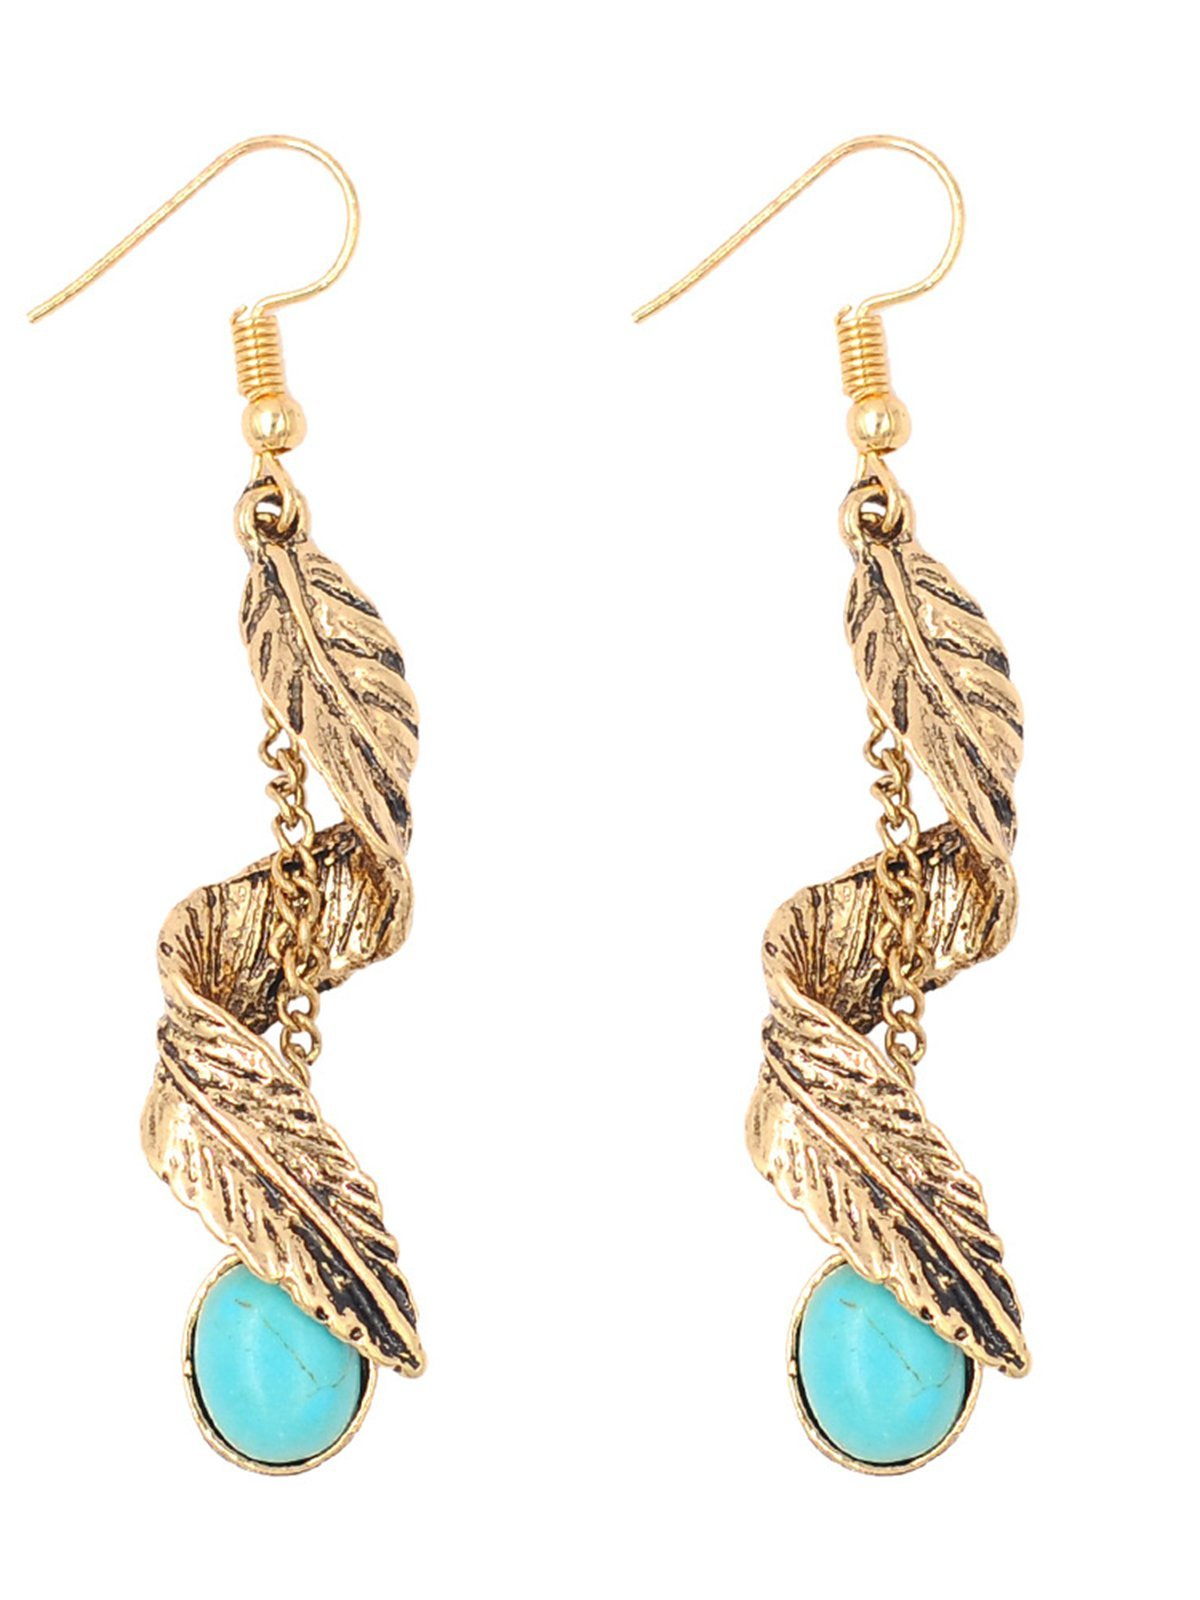 Vintage Ethnic Alloy Turquoise Leaf Fashion All-match Long Earrings